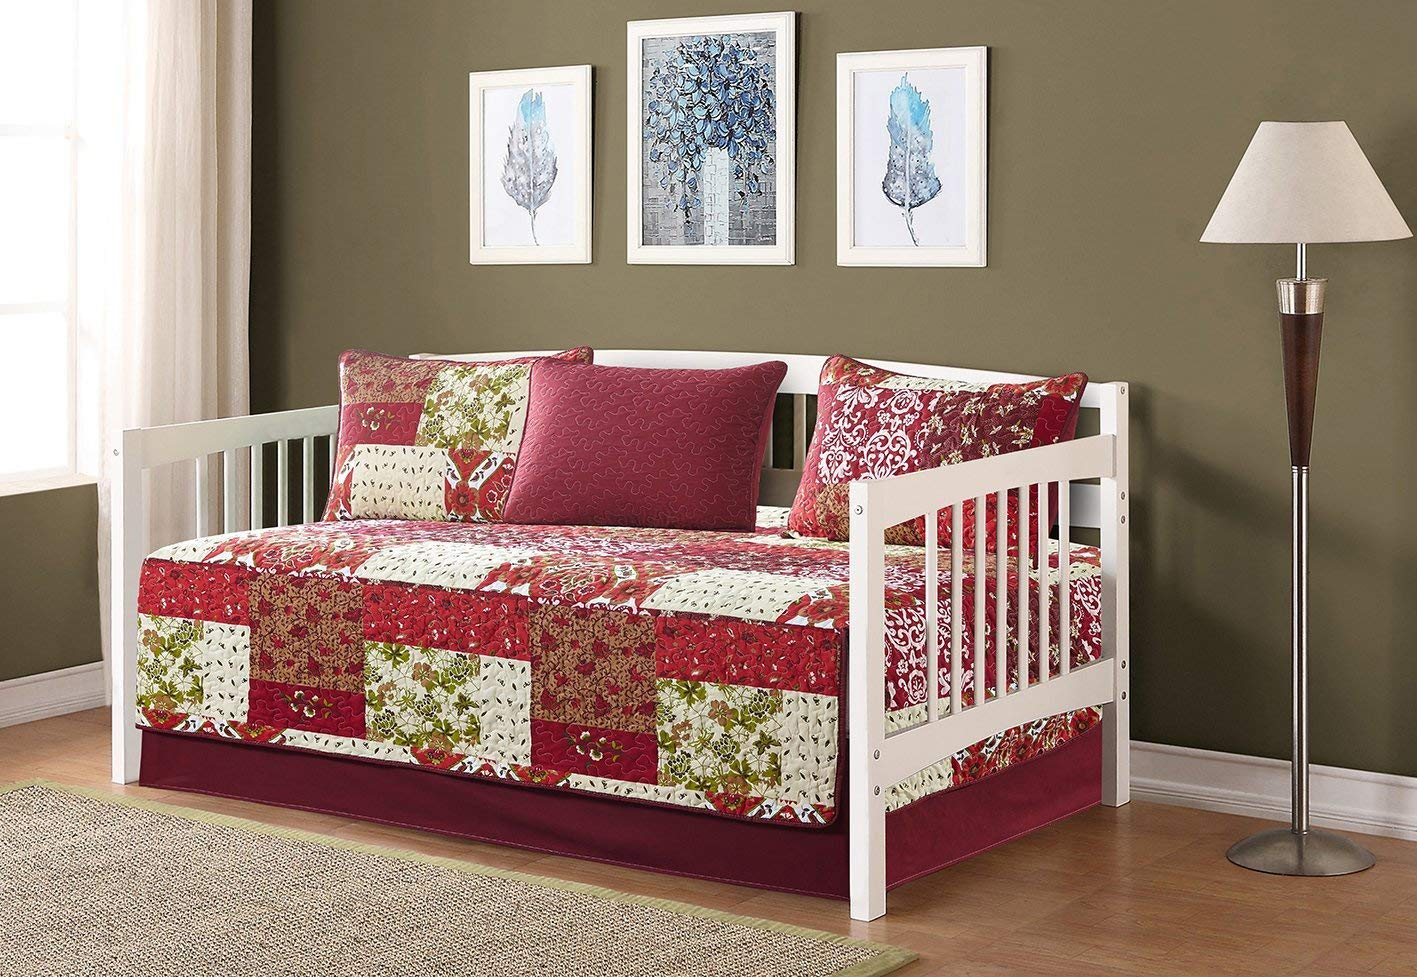 Linen Plus 5pc Daybed Cover Set Reversible Quilted Bedspread Floral Patchwork Burgundy Red Beige Green New